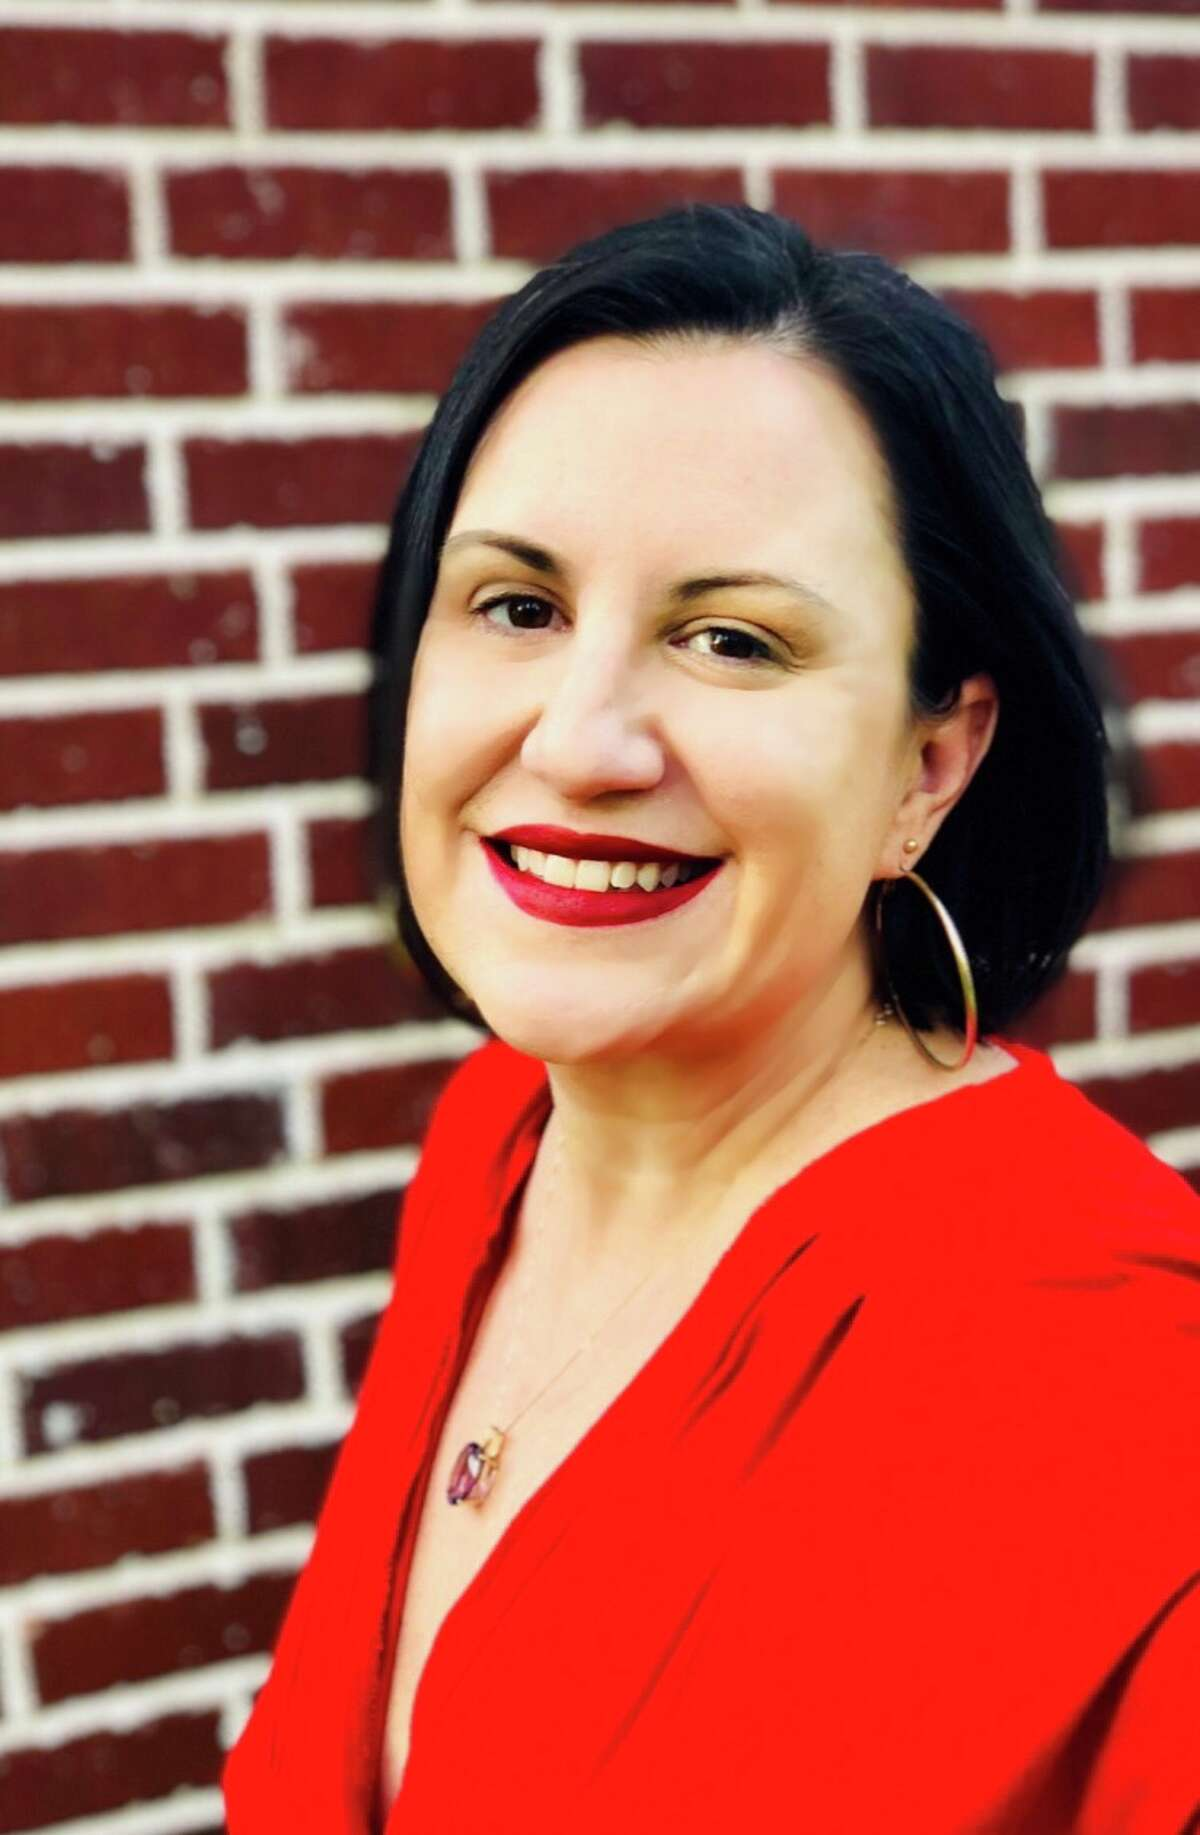 Michelle Lyons released a book on her time covering death row, first as a reporter and then as a prison spokeswoman.